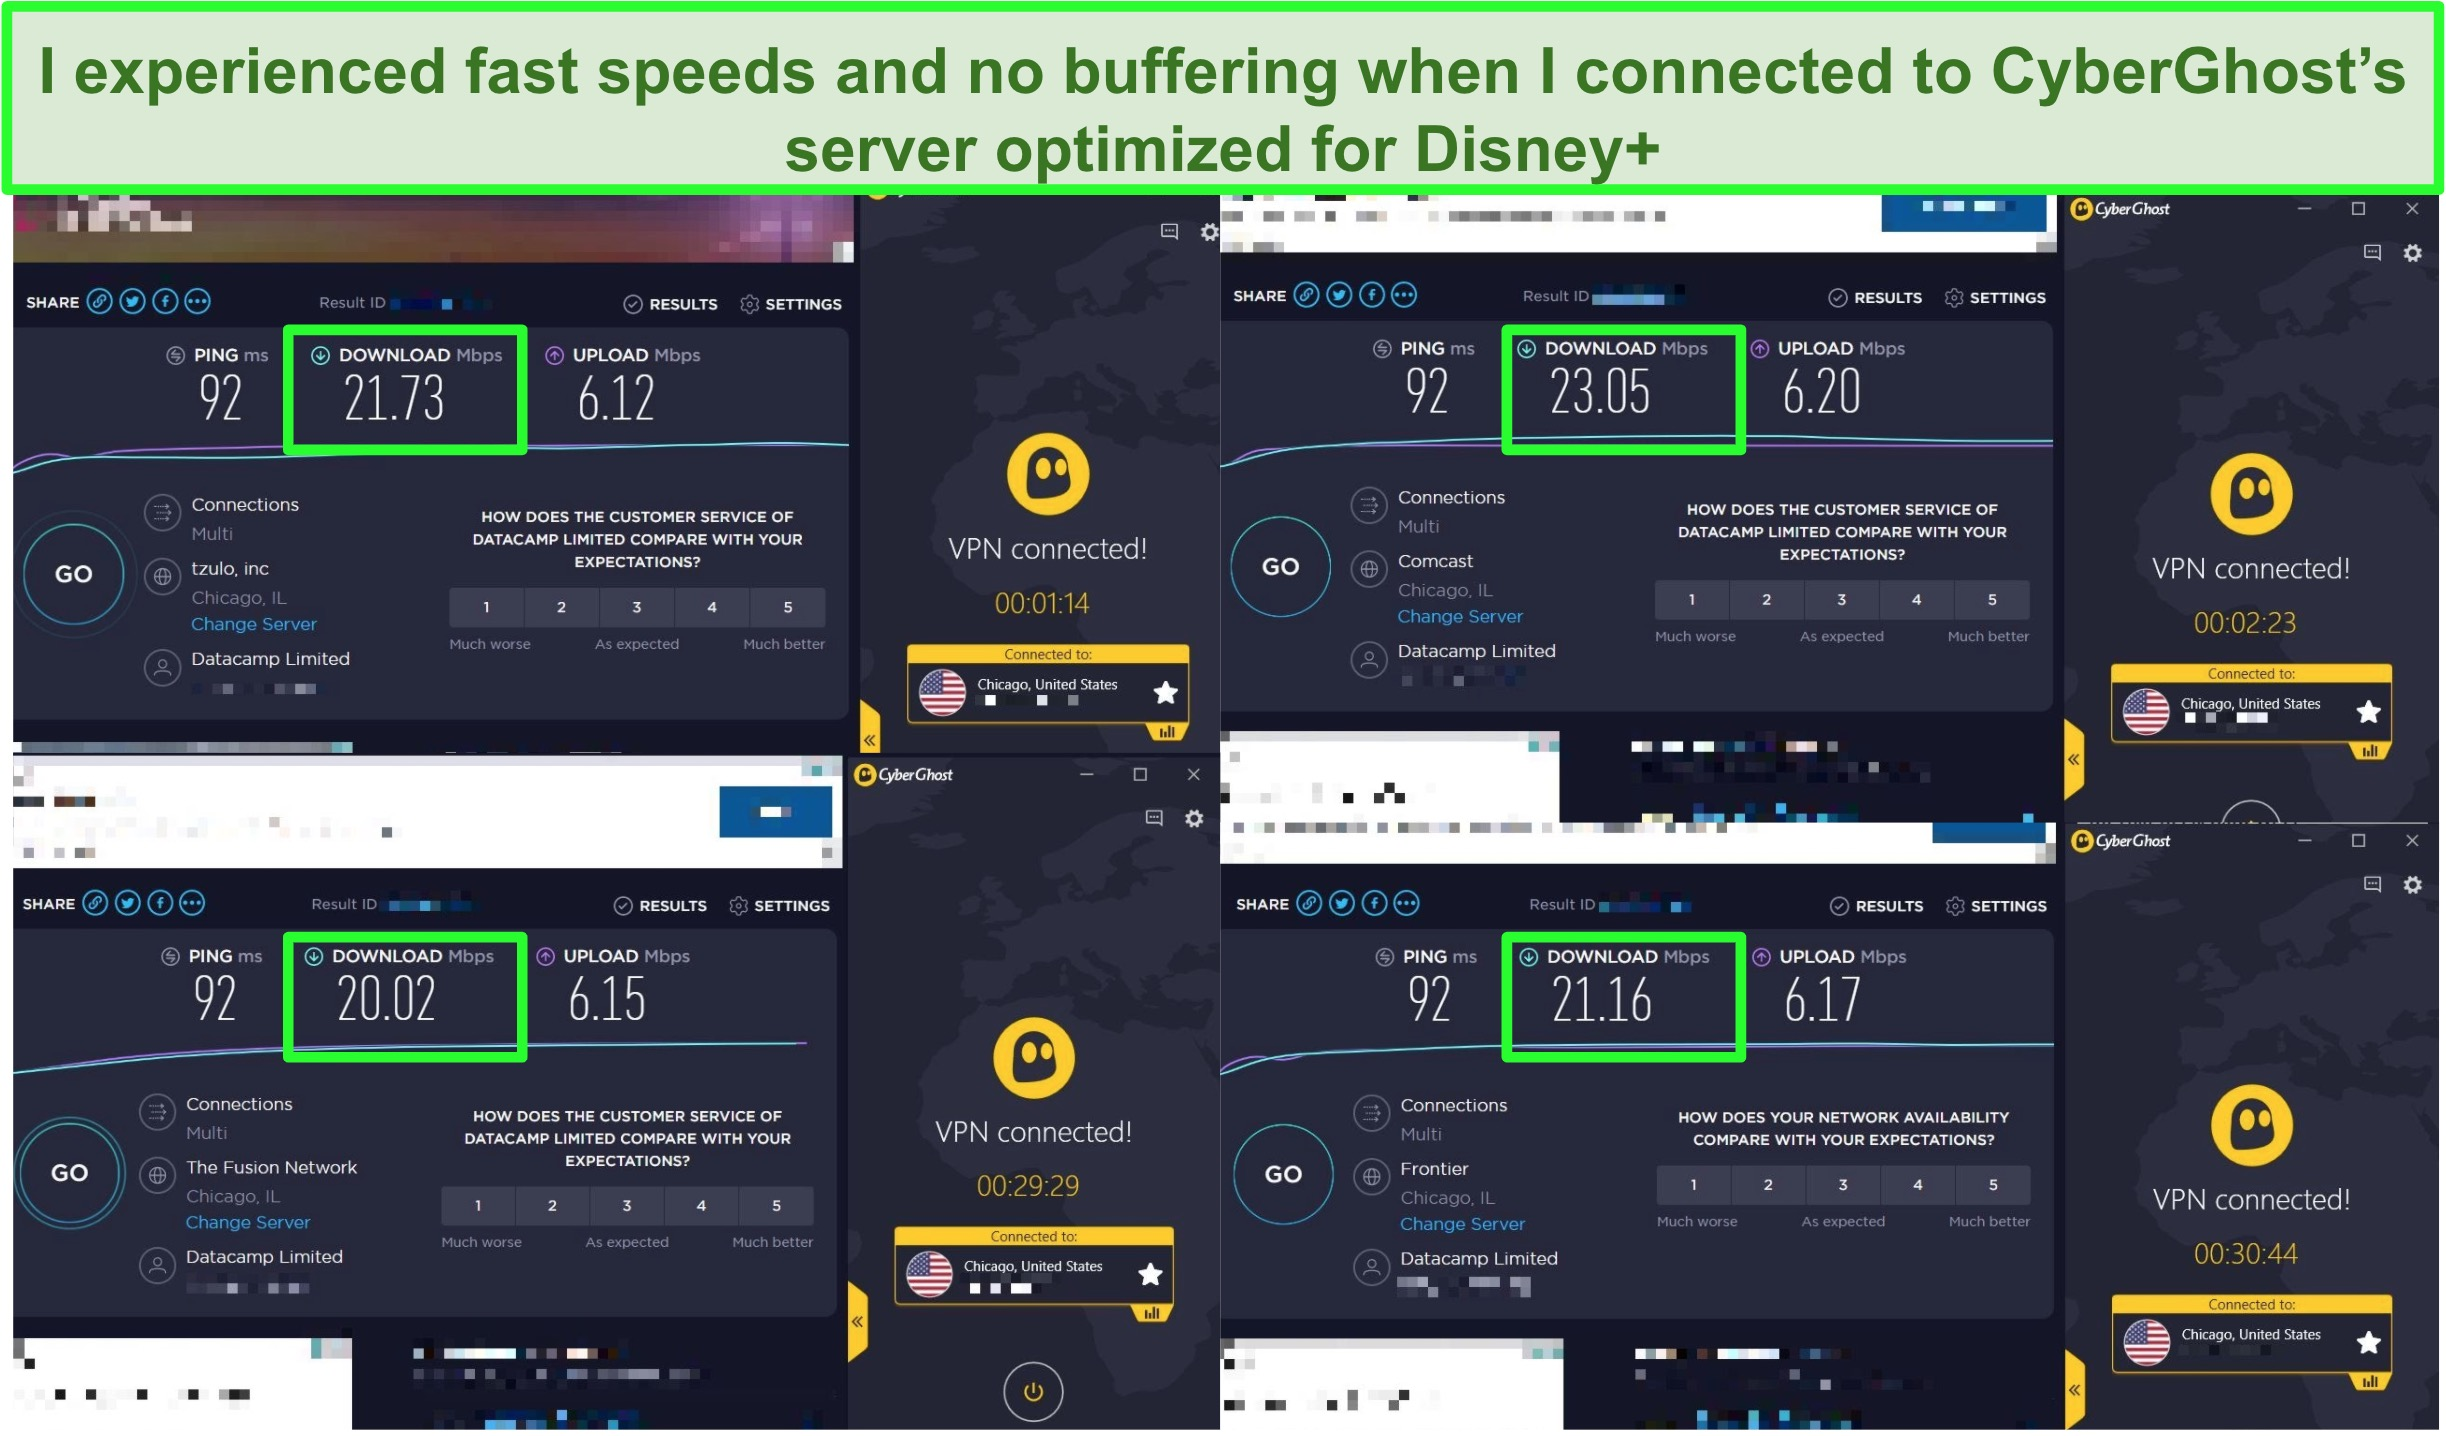 Screenshot of speed tests with fast results while connected to CyberGhost